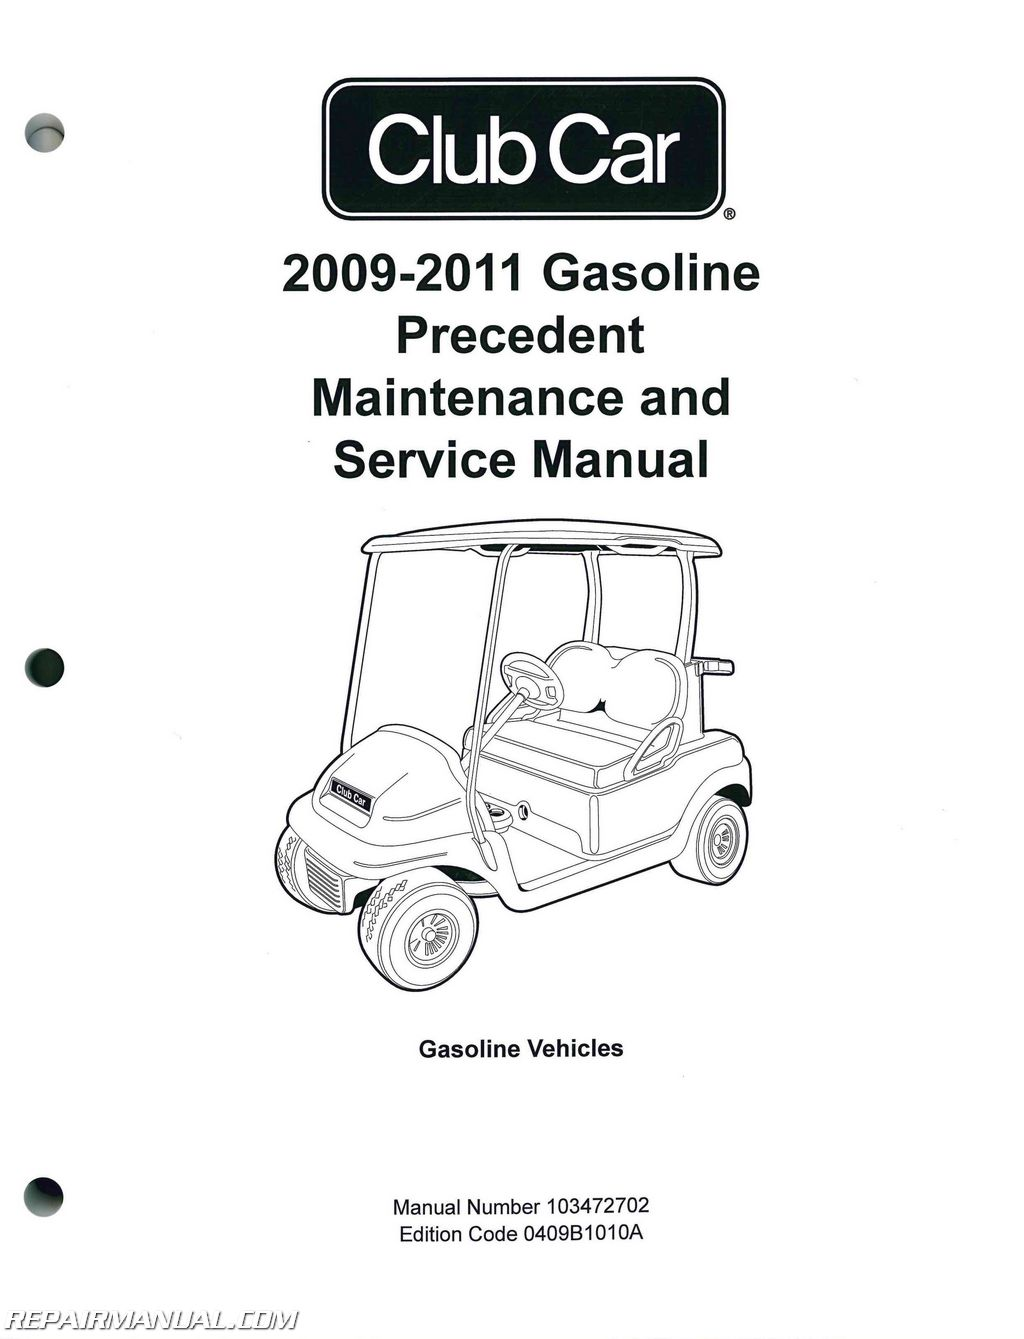 2009 2011 club car gasoline precedent maintenance and service manual rh repairmanual com Owner's Manual Service ManualsOnline